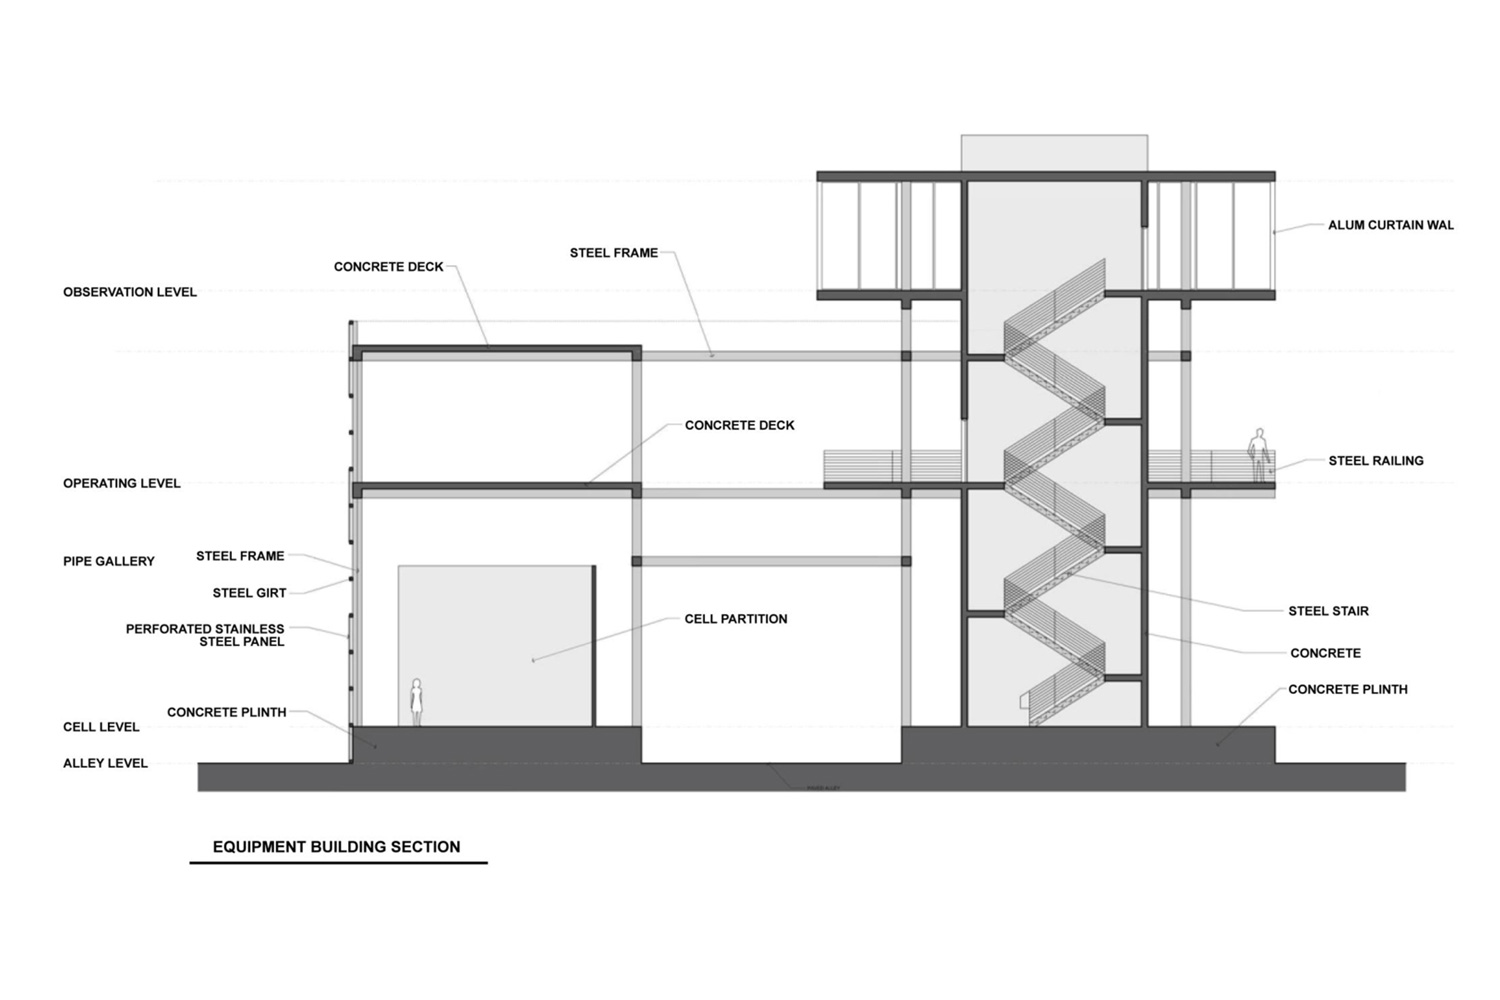 K-25 Equipment Building - Viewing Tower (Tower Section Schematic)